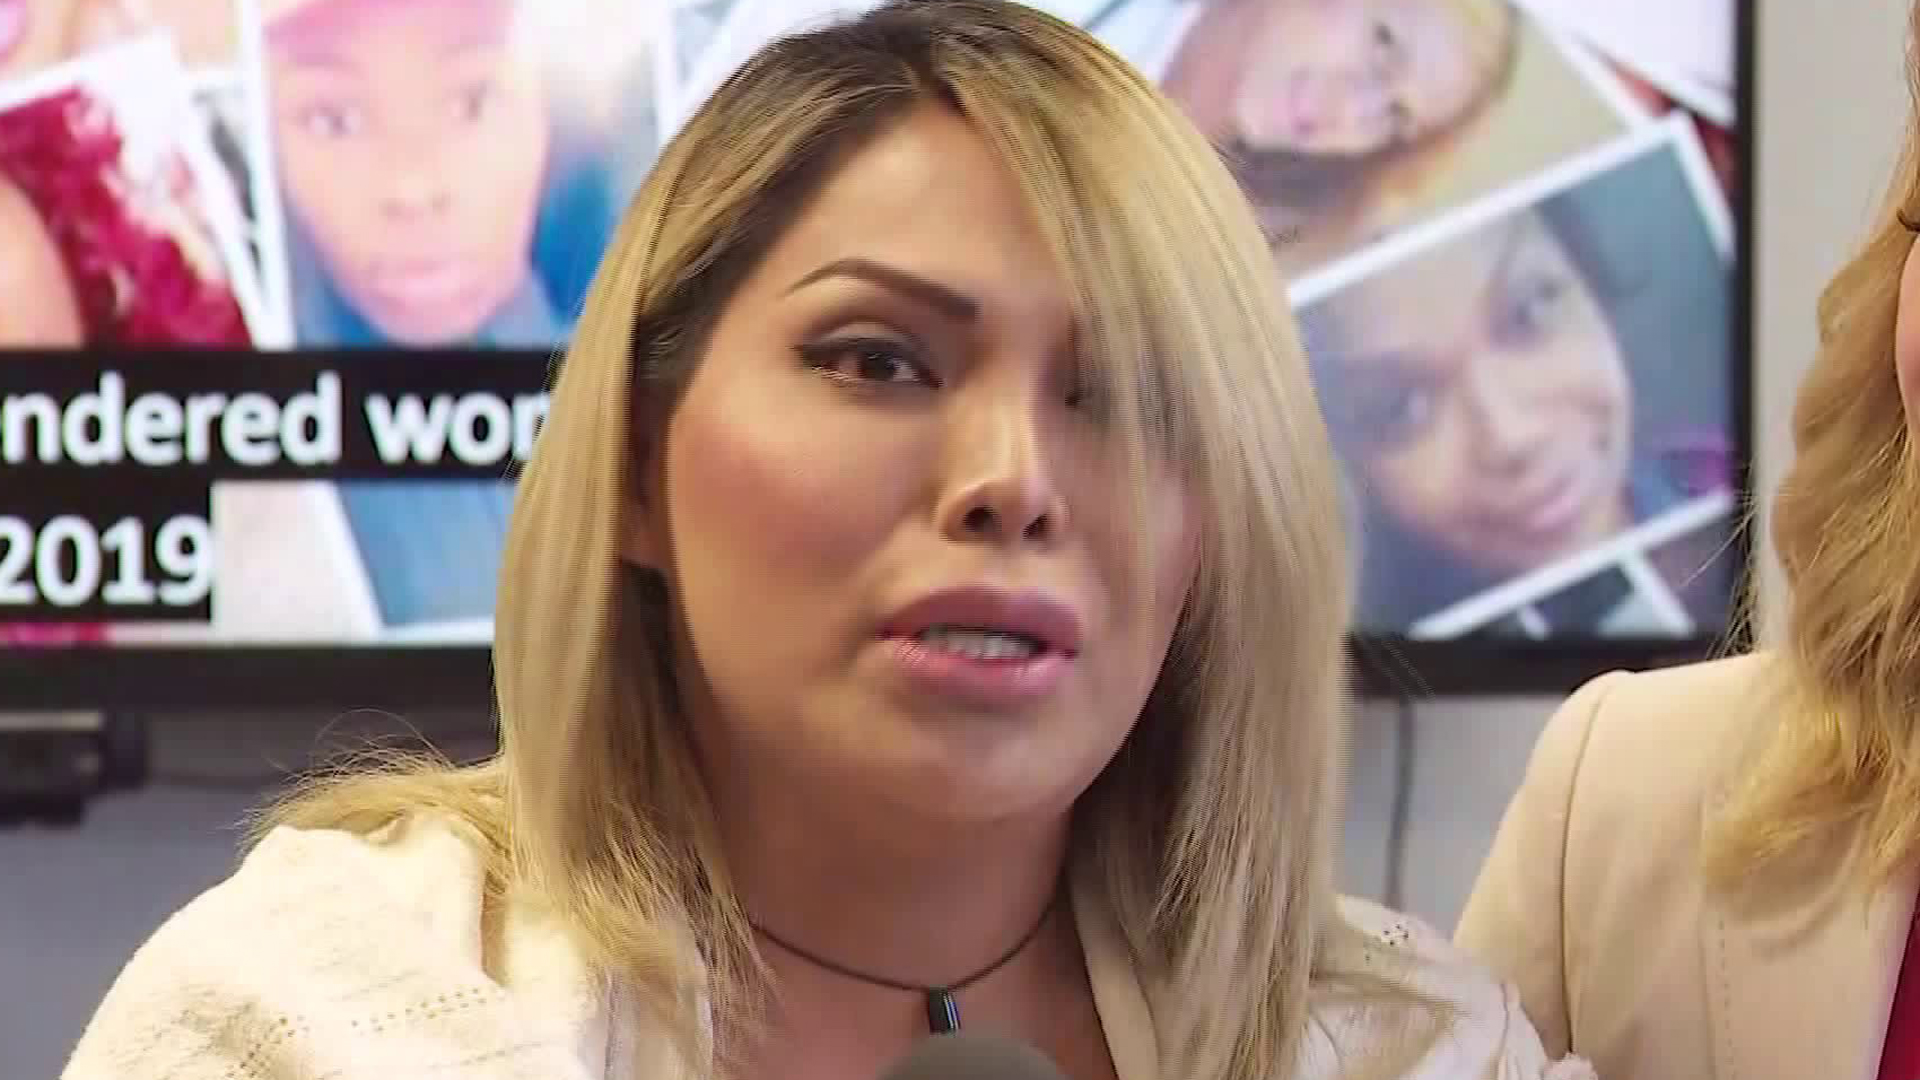 Jennifer Bianchi speaks about being thrown out of downtown L.A. club Las Perlas in an incident that's being investigated as a hate crime, on Sept. 16, 2019, in Woodland Hills. (Credit: KTLA)